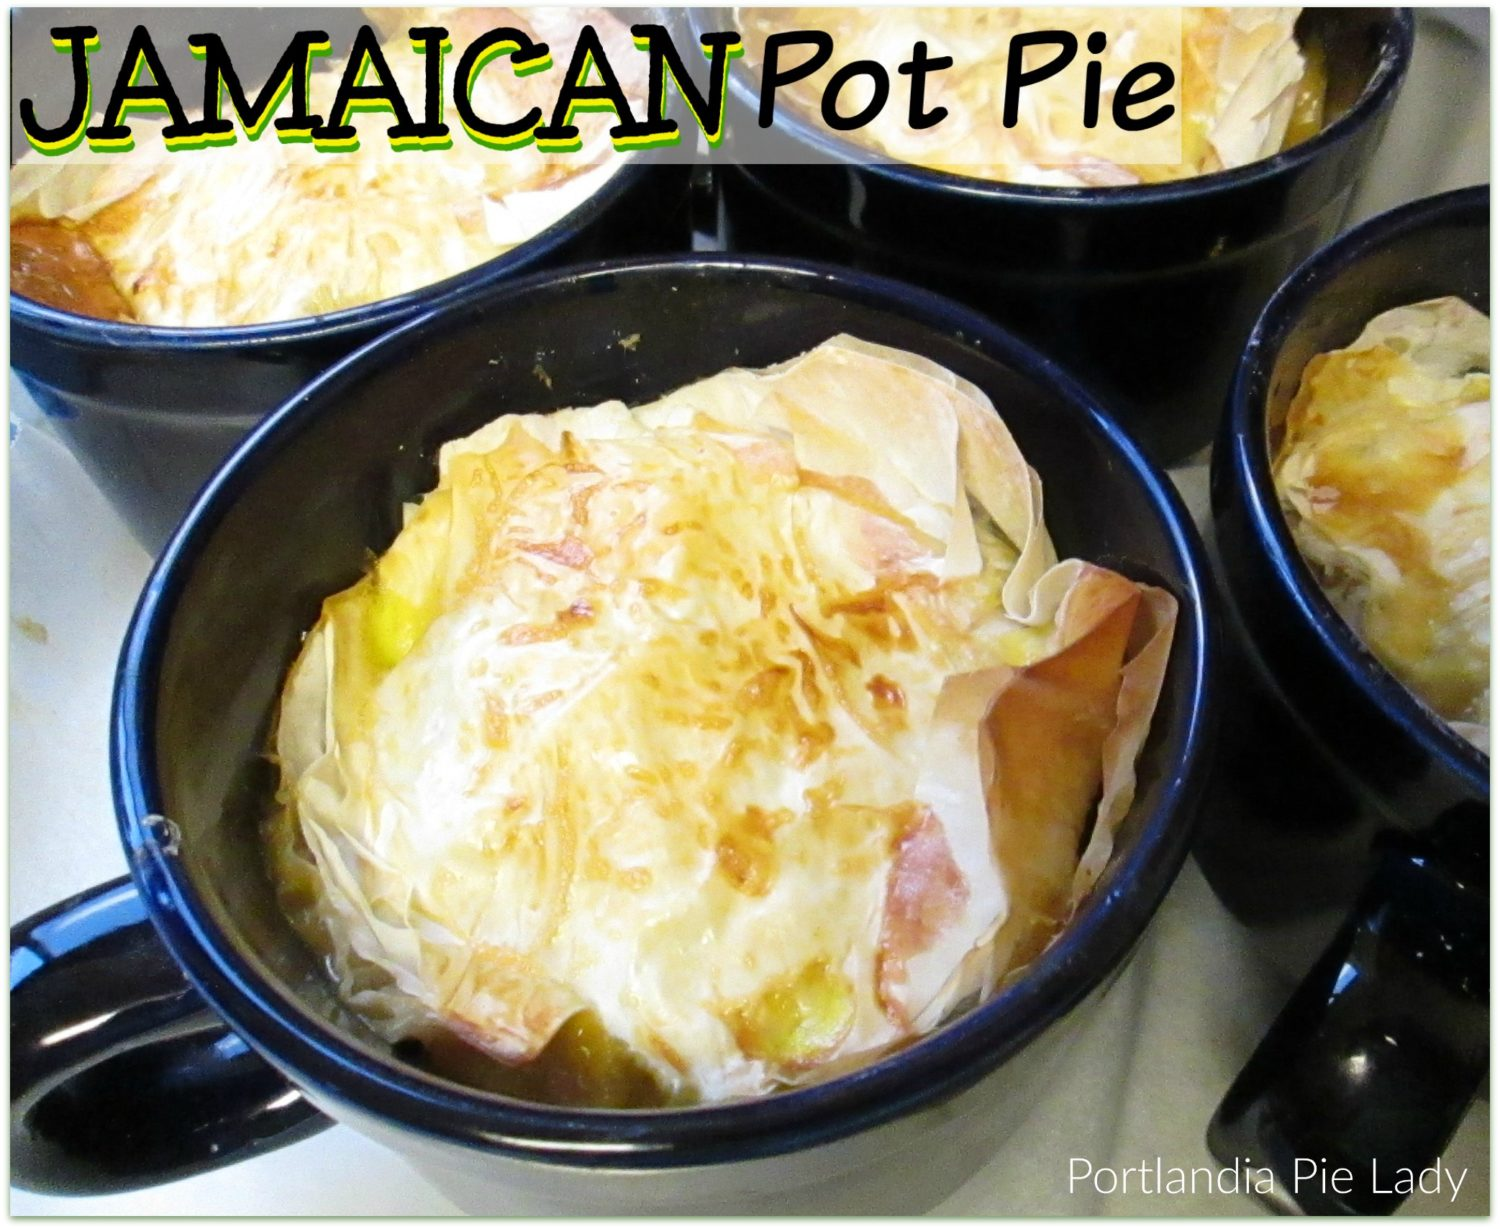 A warm and comforting medium or super spicy turkey pot pie with the flavors of a Jamaican kitchen. A new and tasty twist on an old favorite.